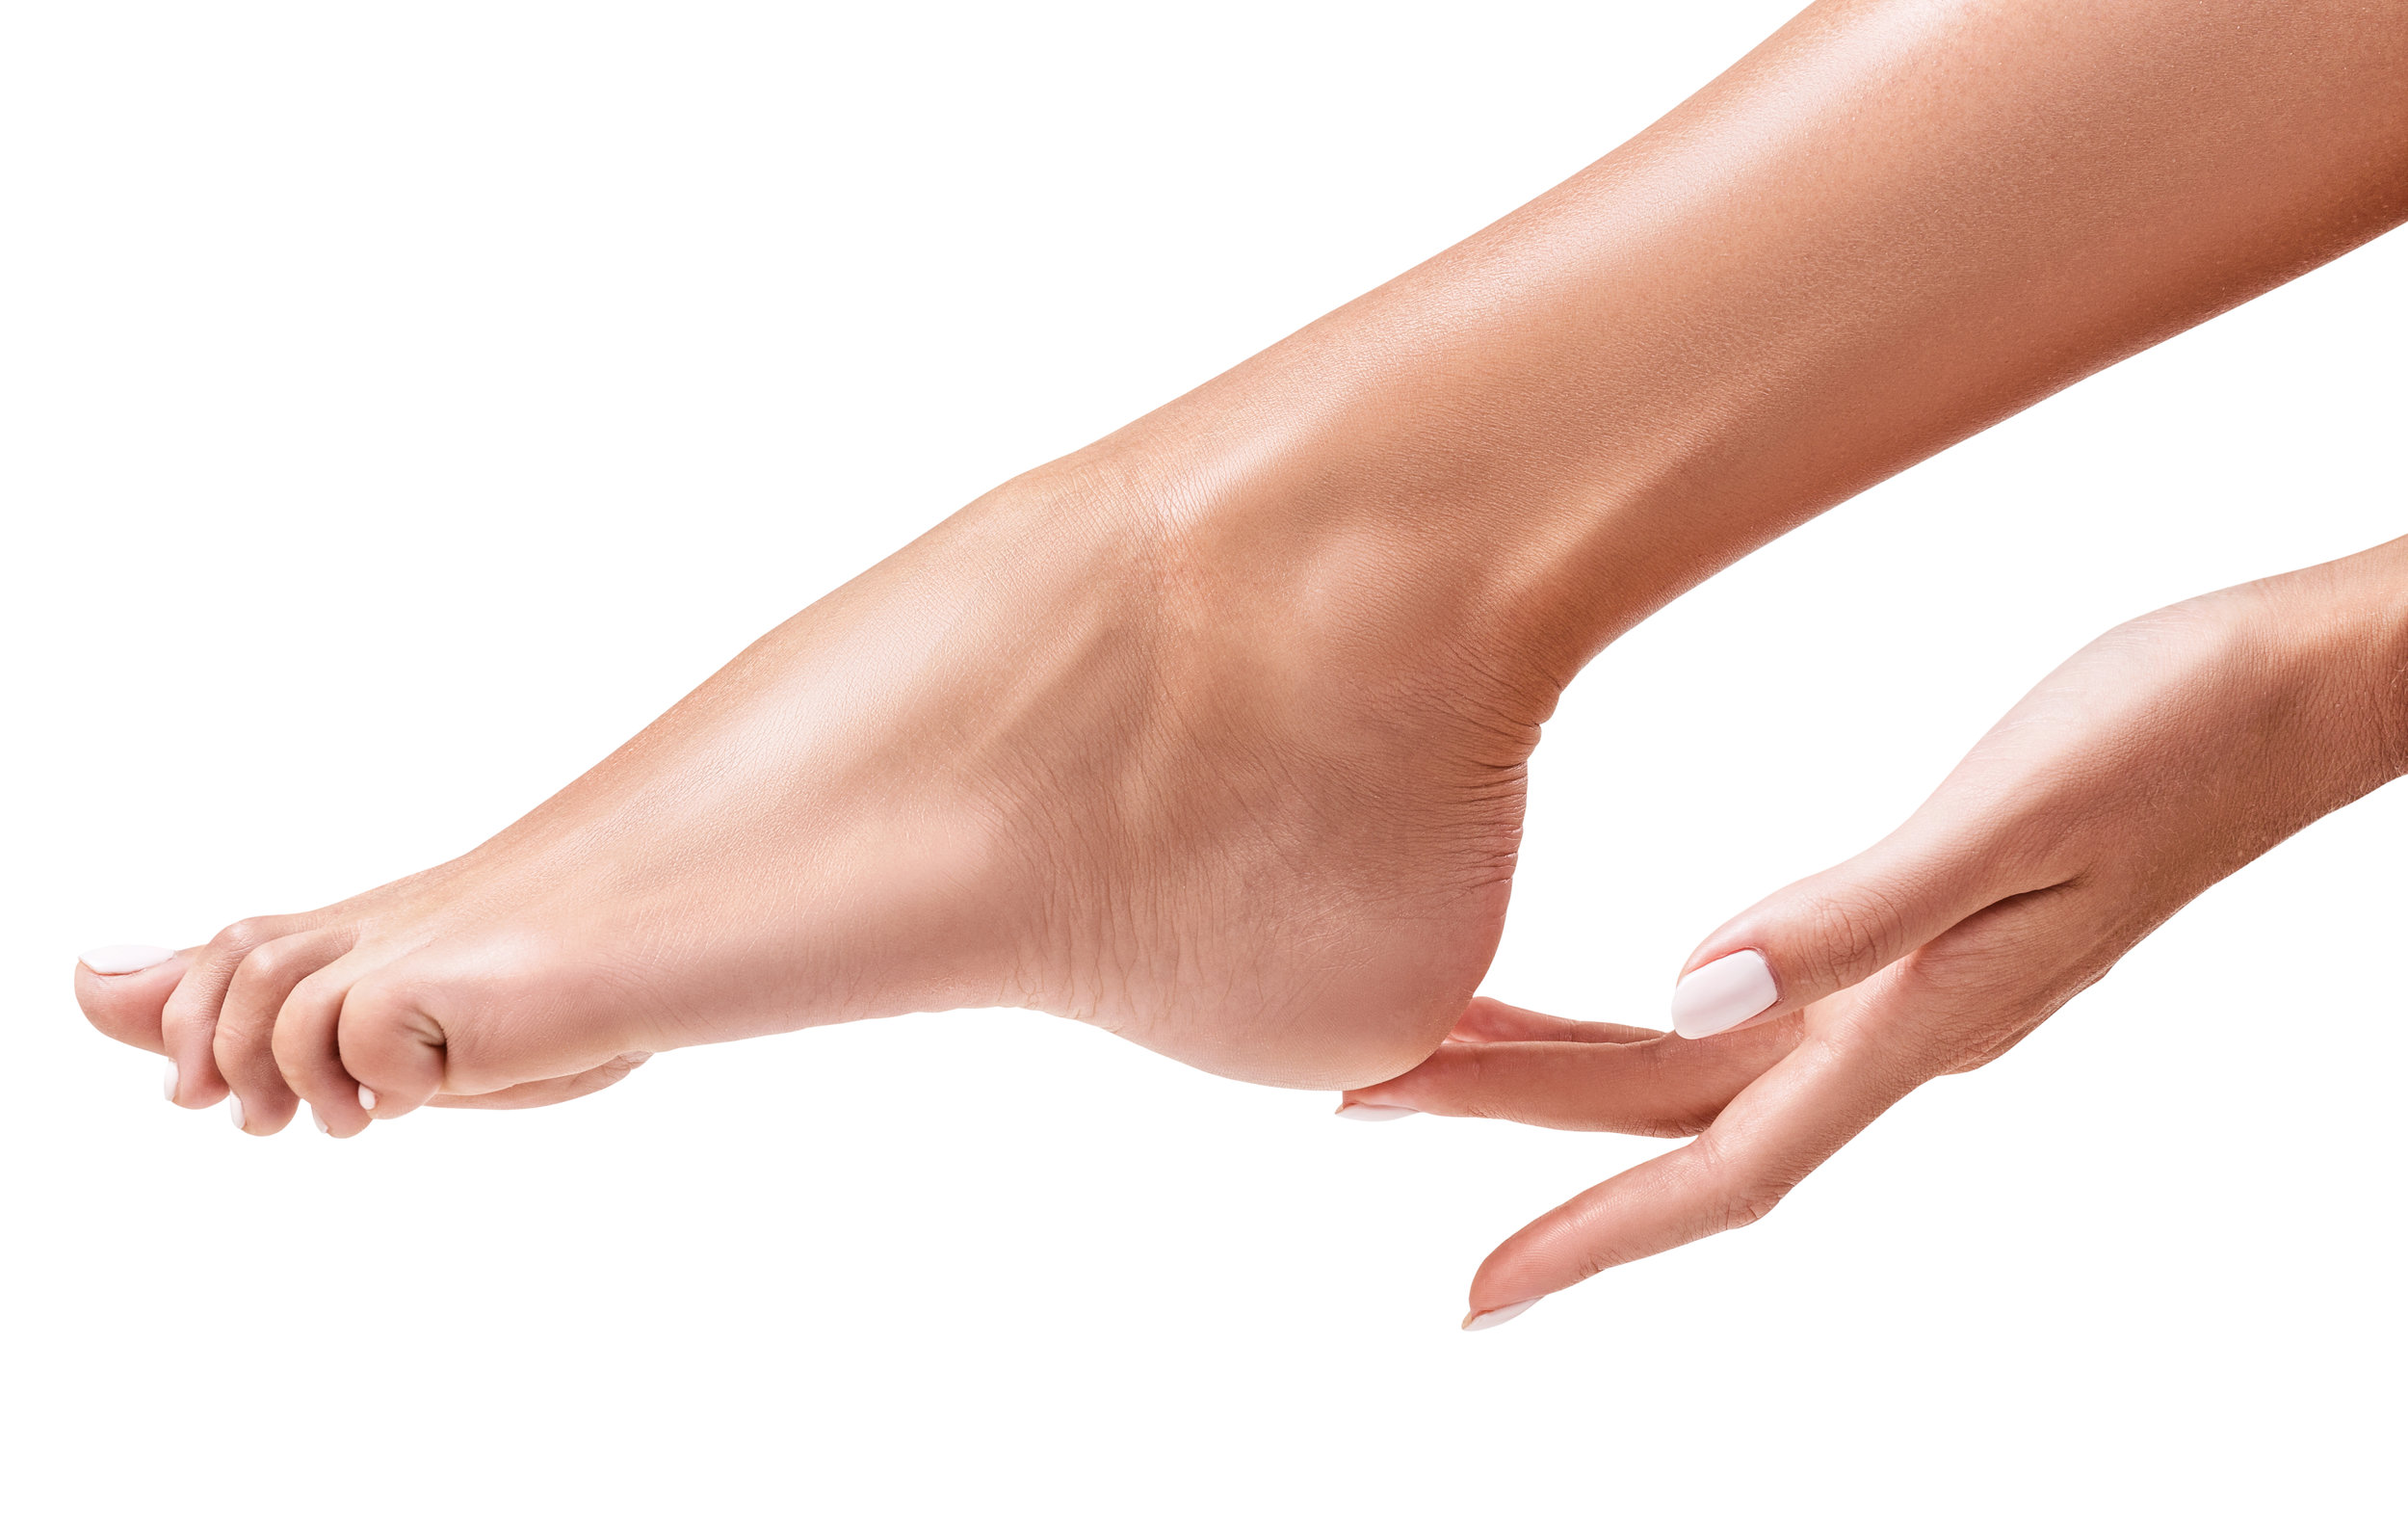 KJ Chiropody & Podiatry in Timperley and Altrincham